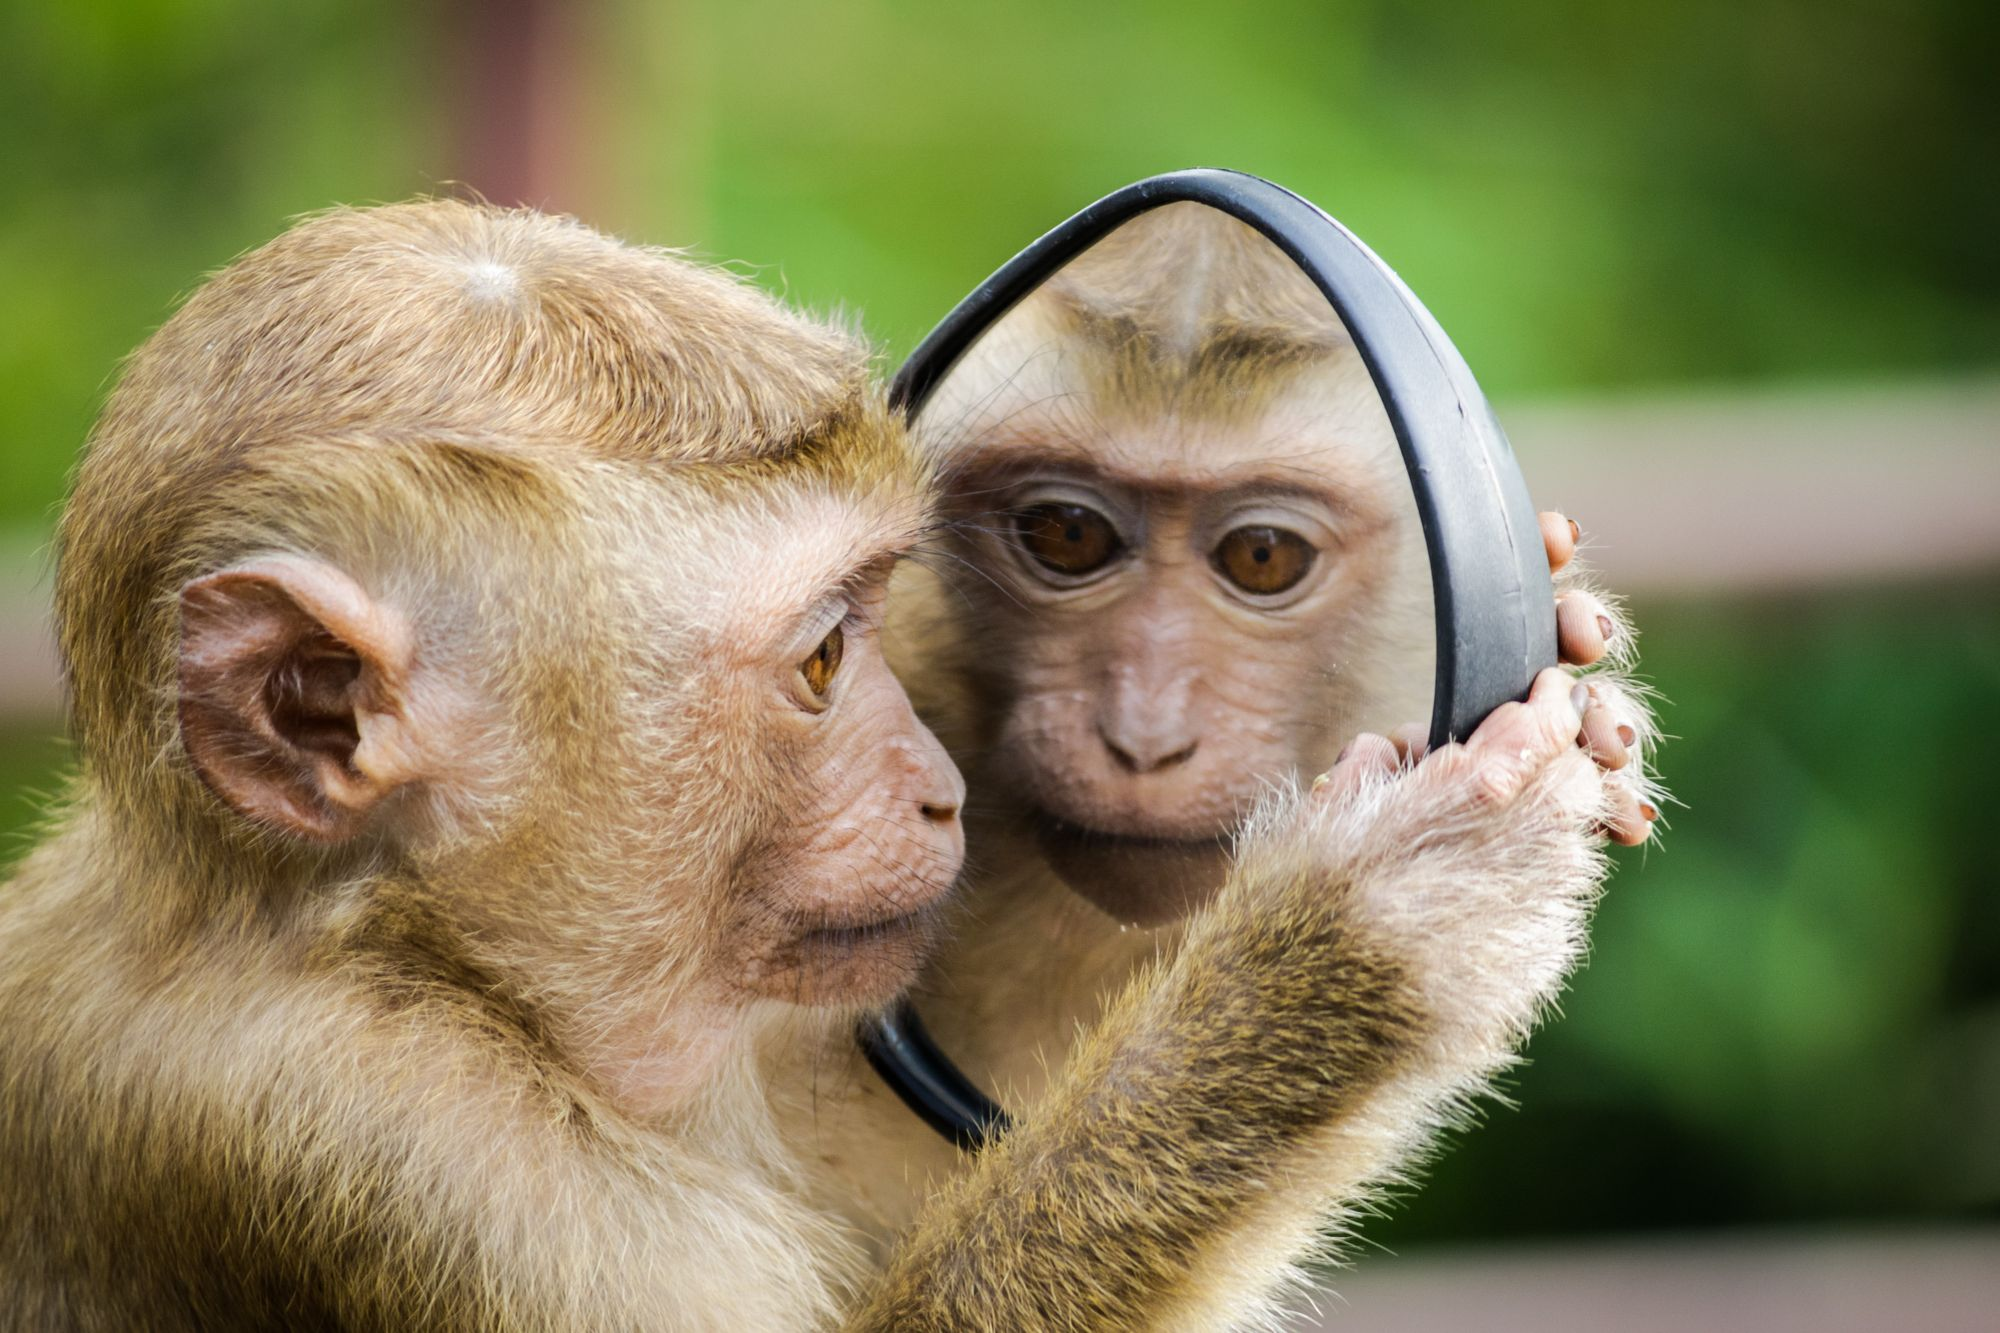 Monkey looking at its reflection in the mirror